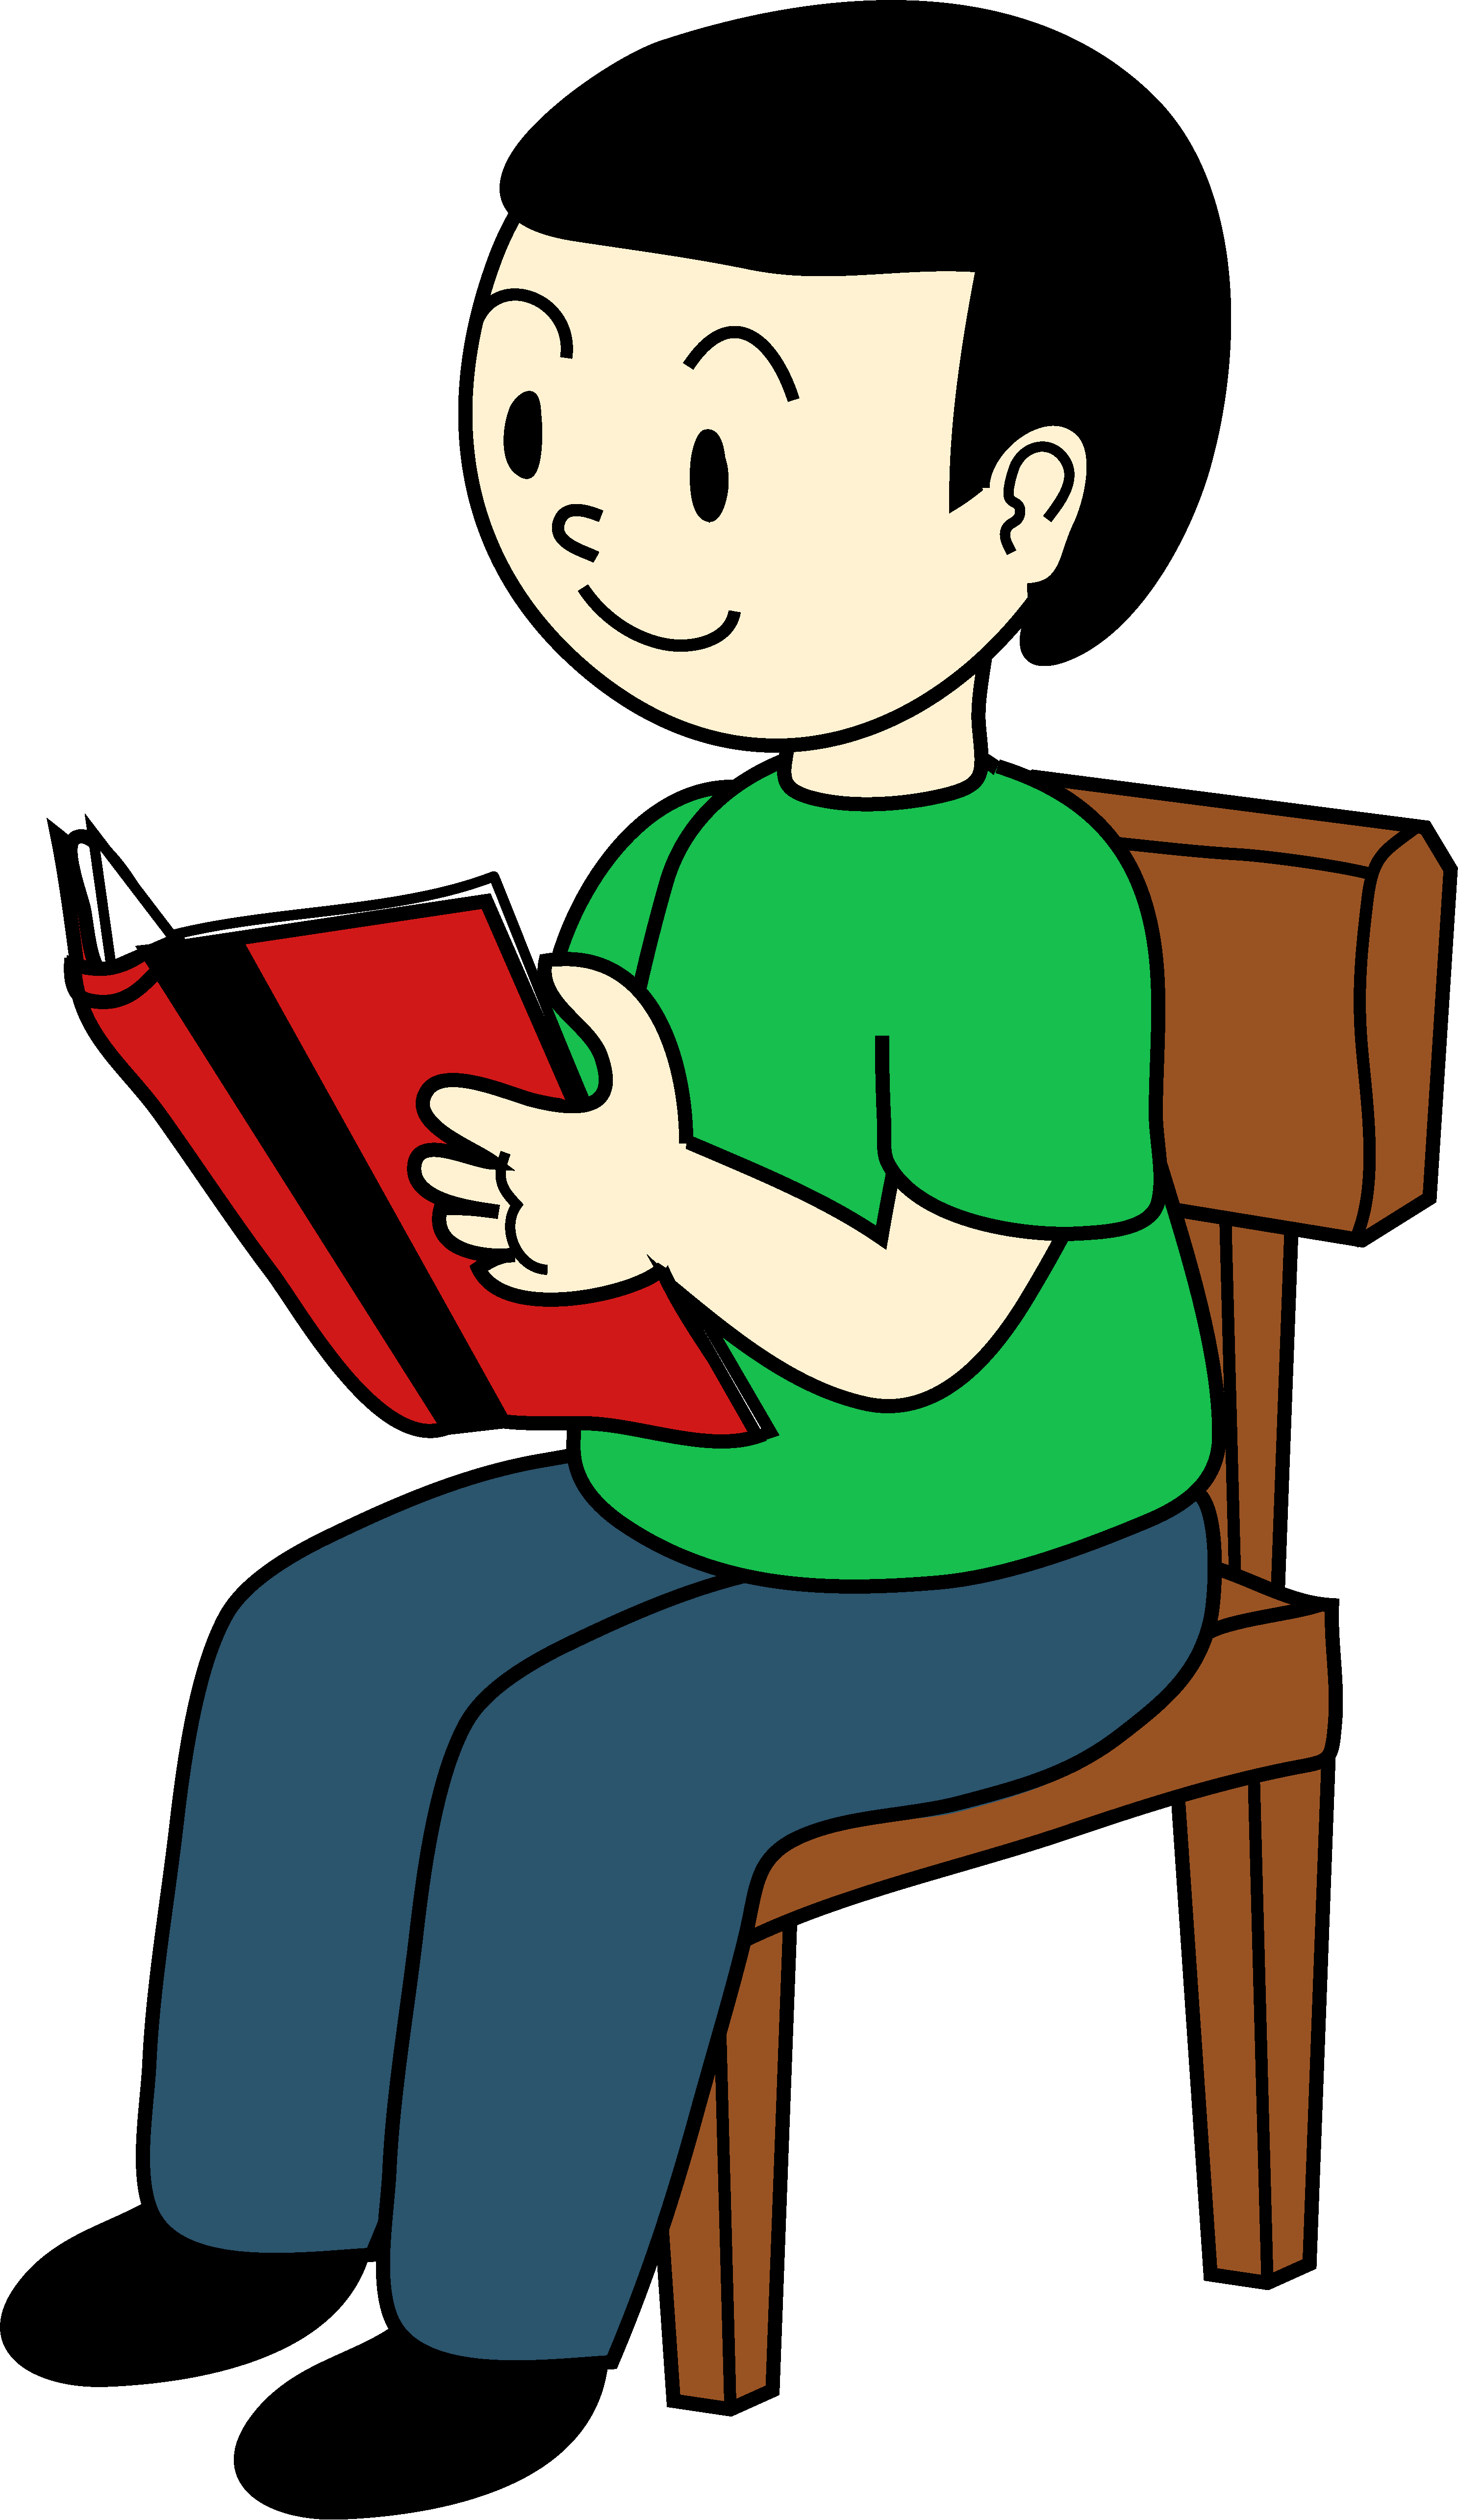 svg royalty free stock Kids sitting clipart. Boy on chair reading